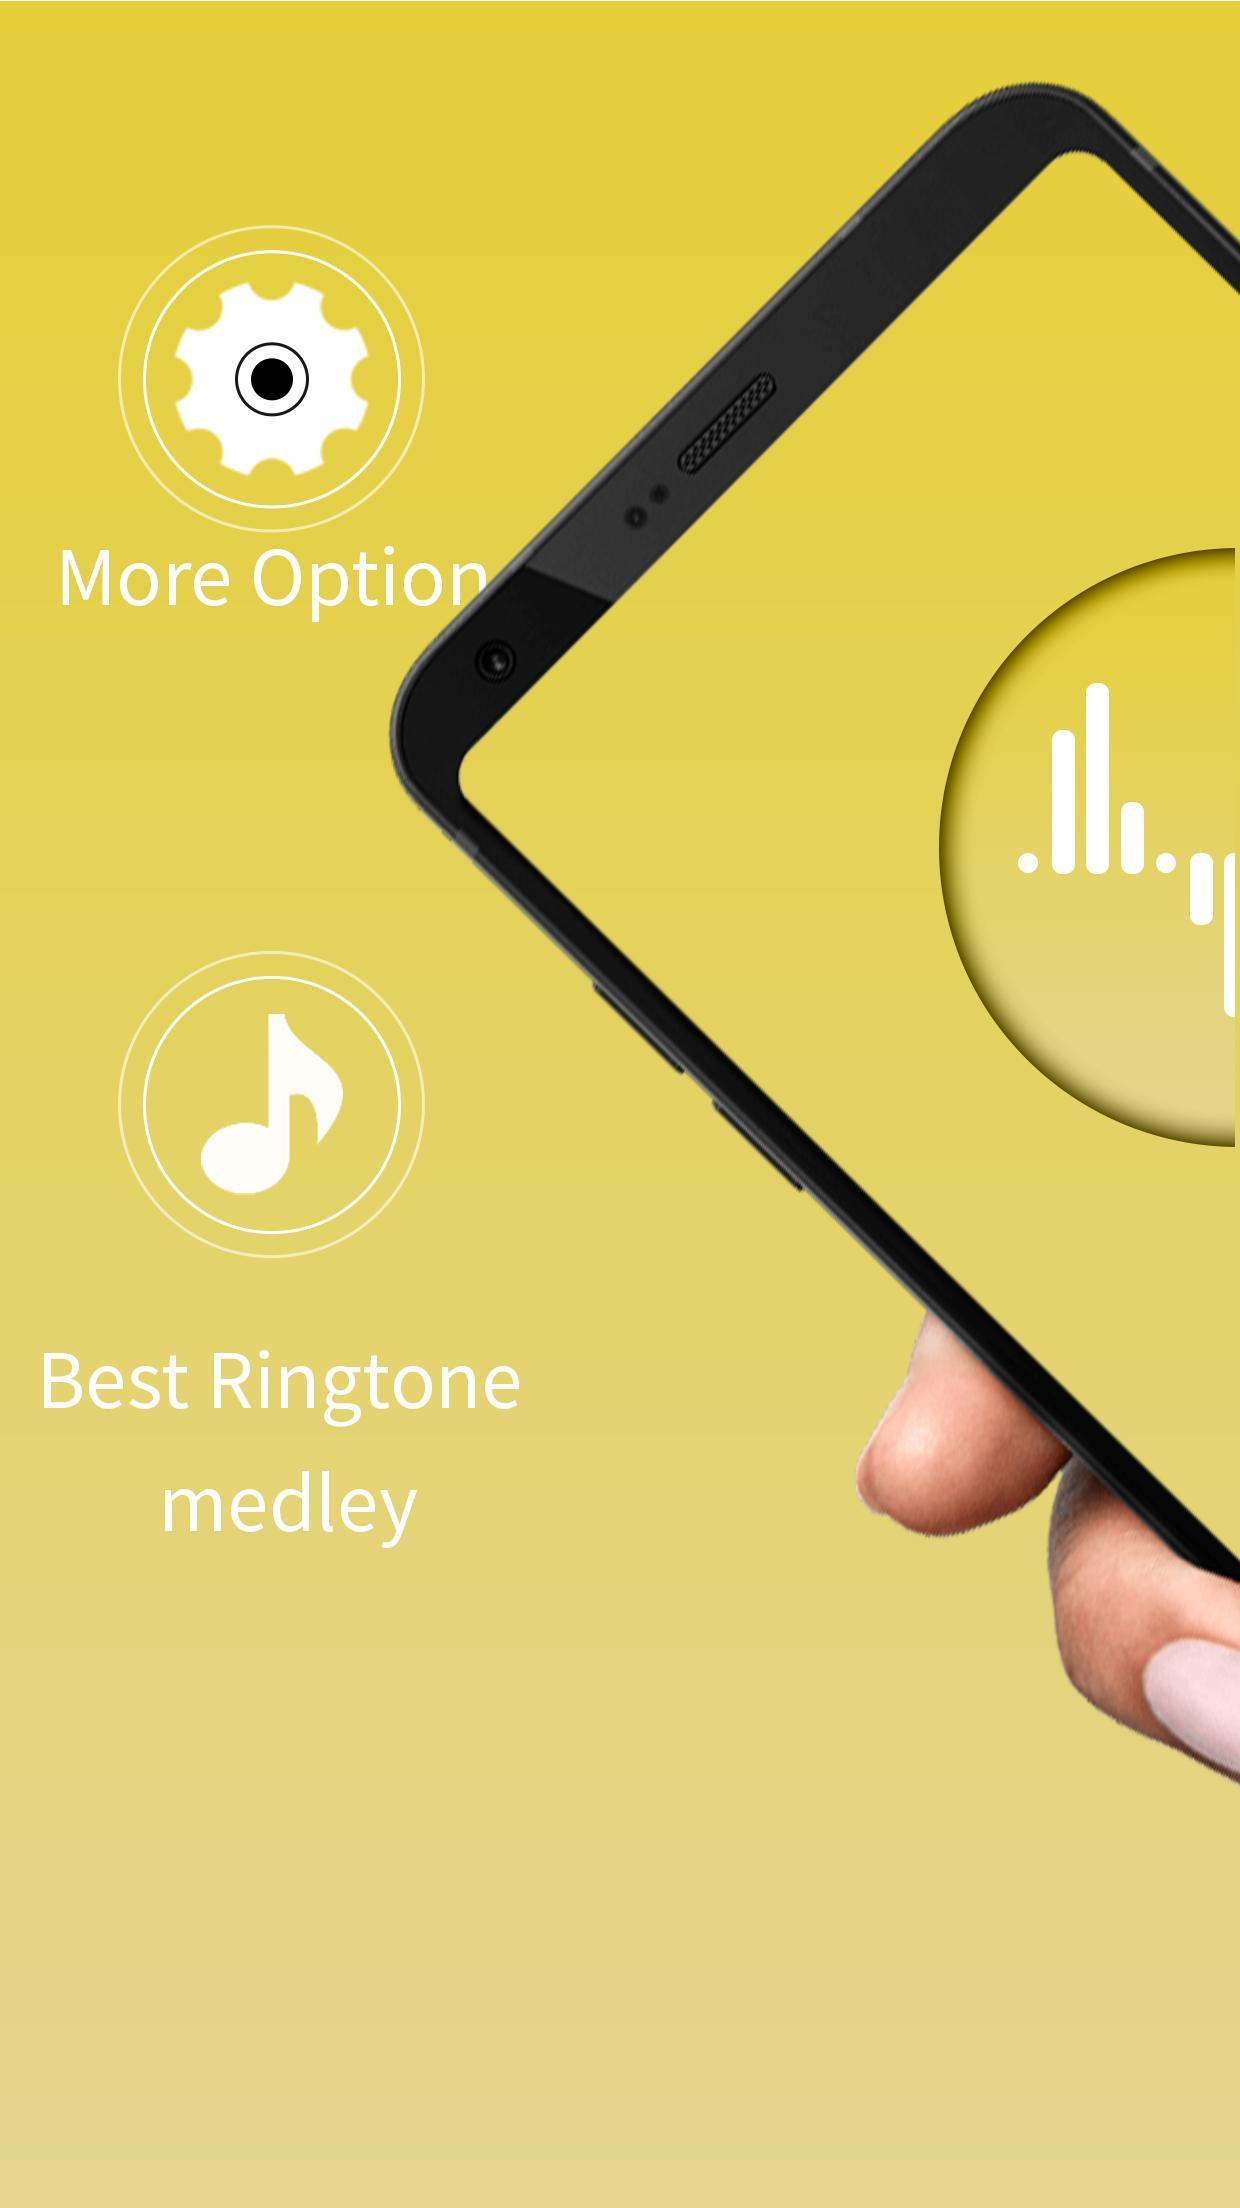 Tamil Ringtones - South Indian Ringtone Download for Android